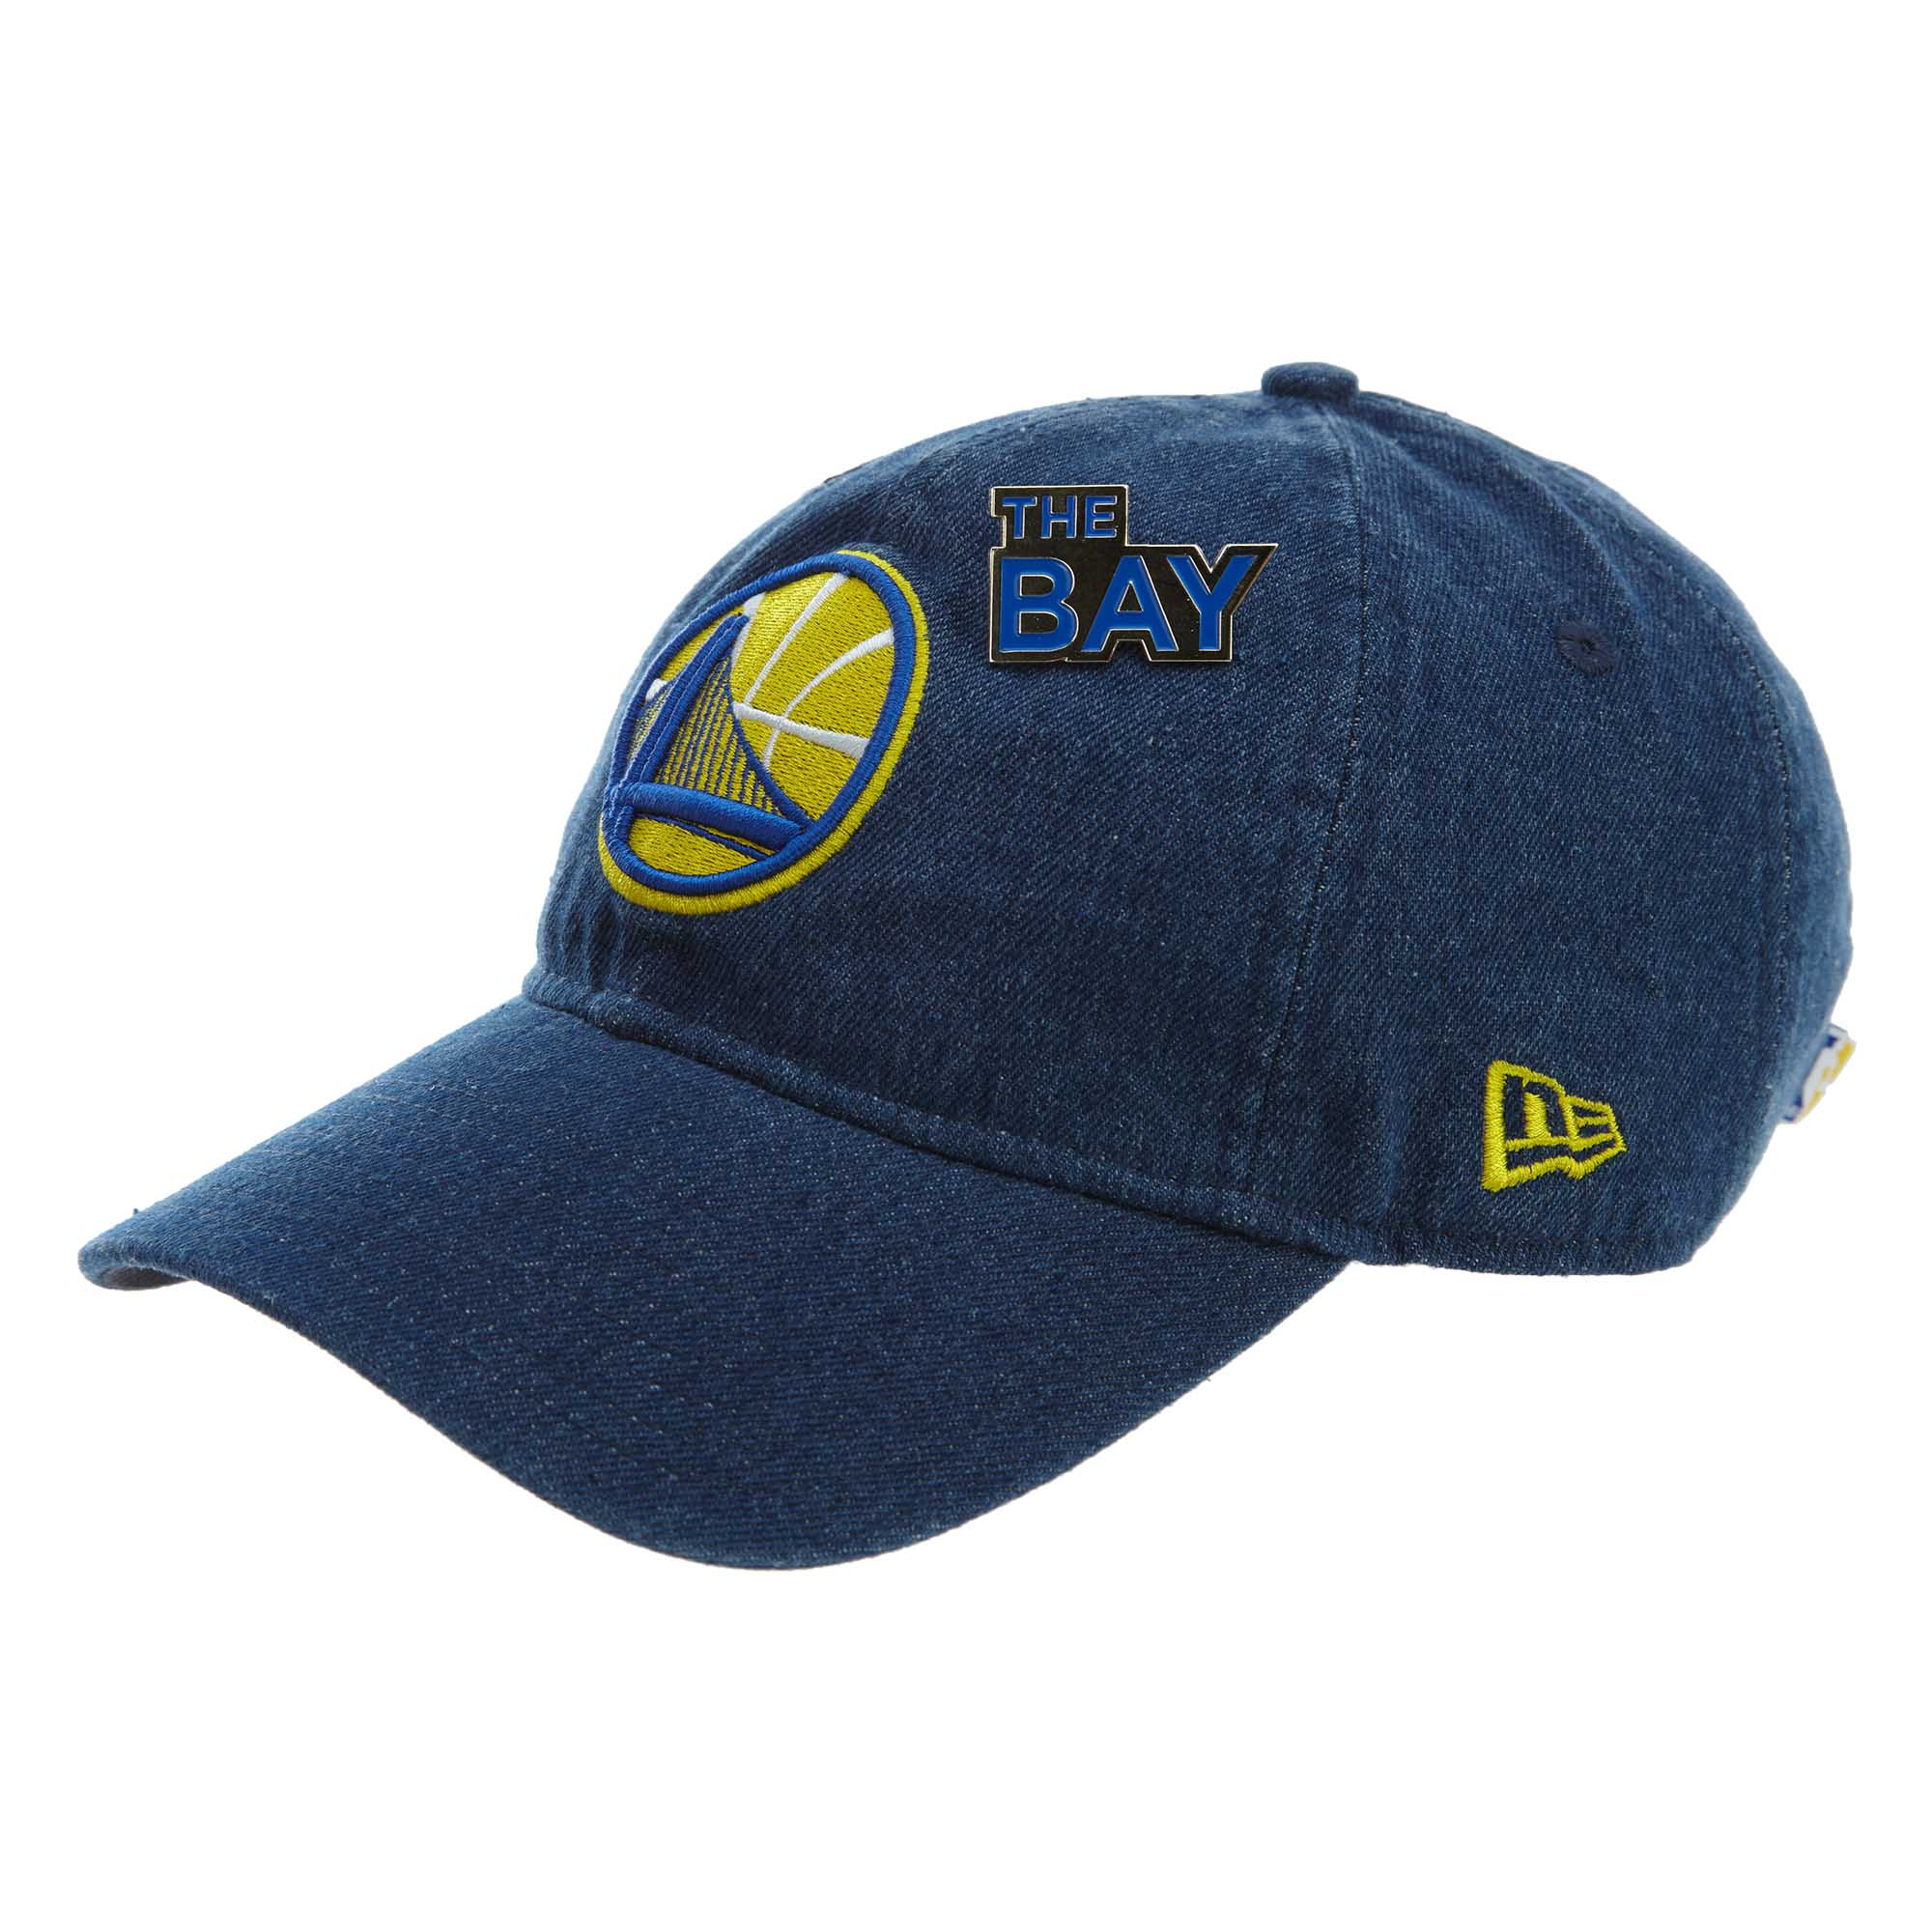 Golden State Warriors Baseball Hat Cap One Size New Choose Your Style!!